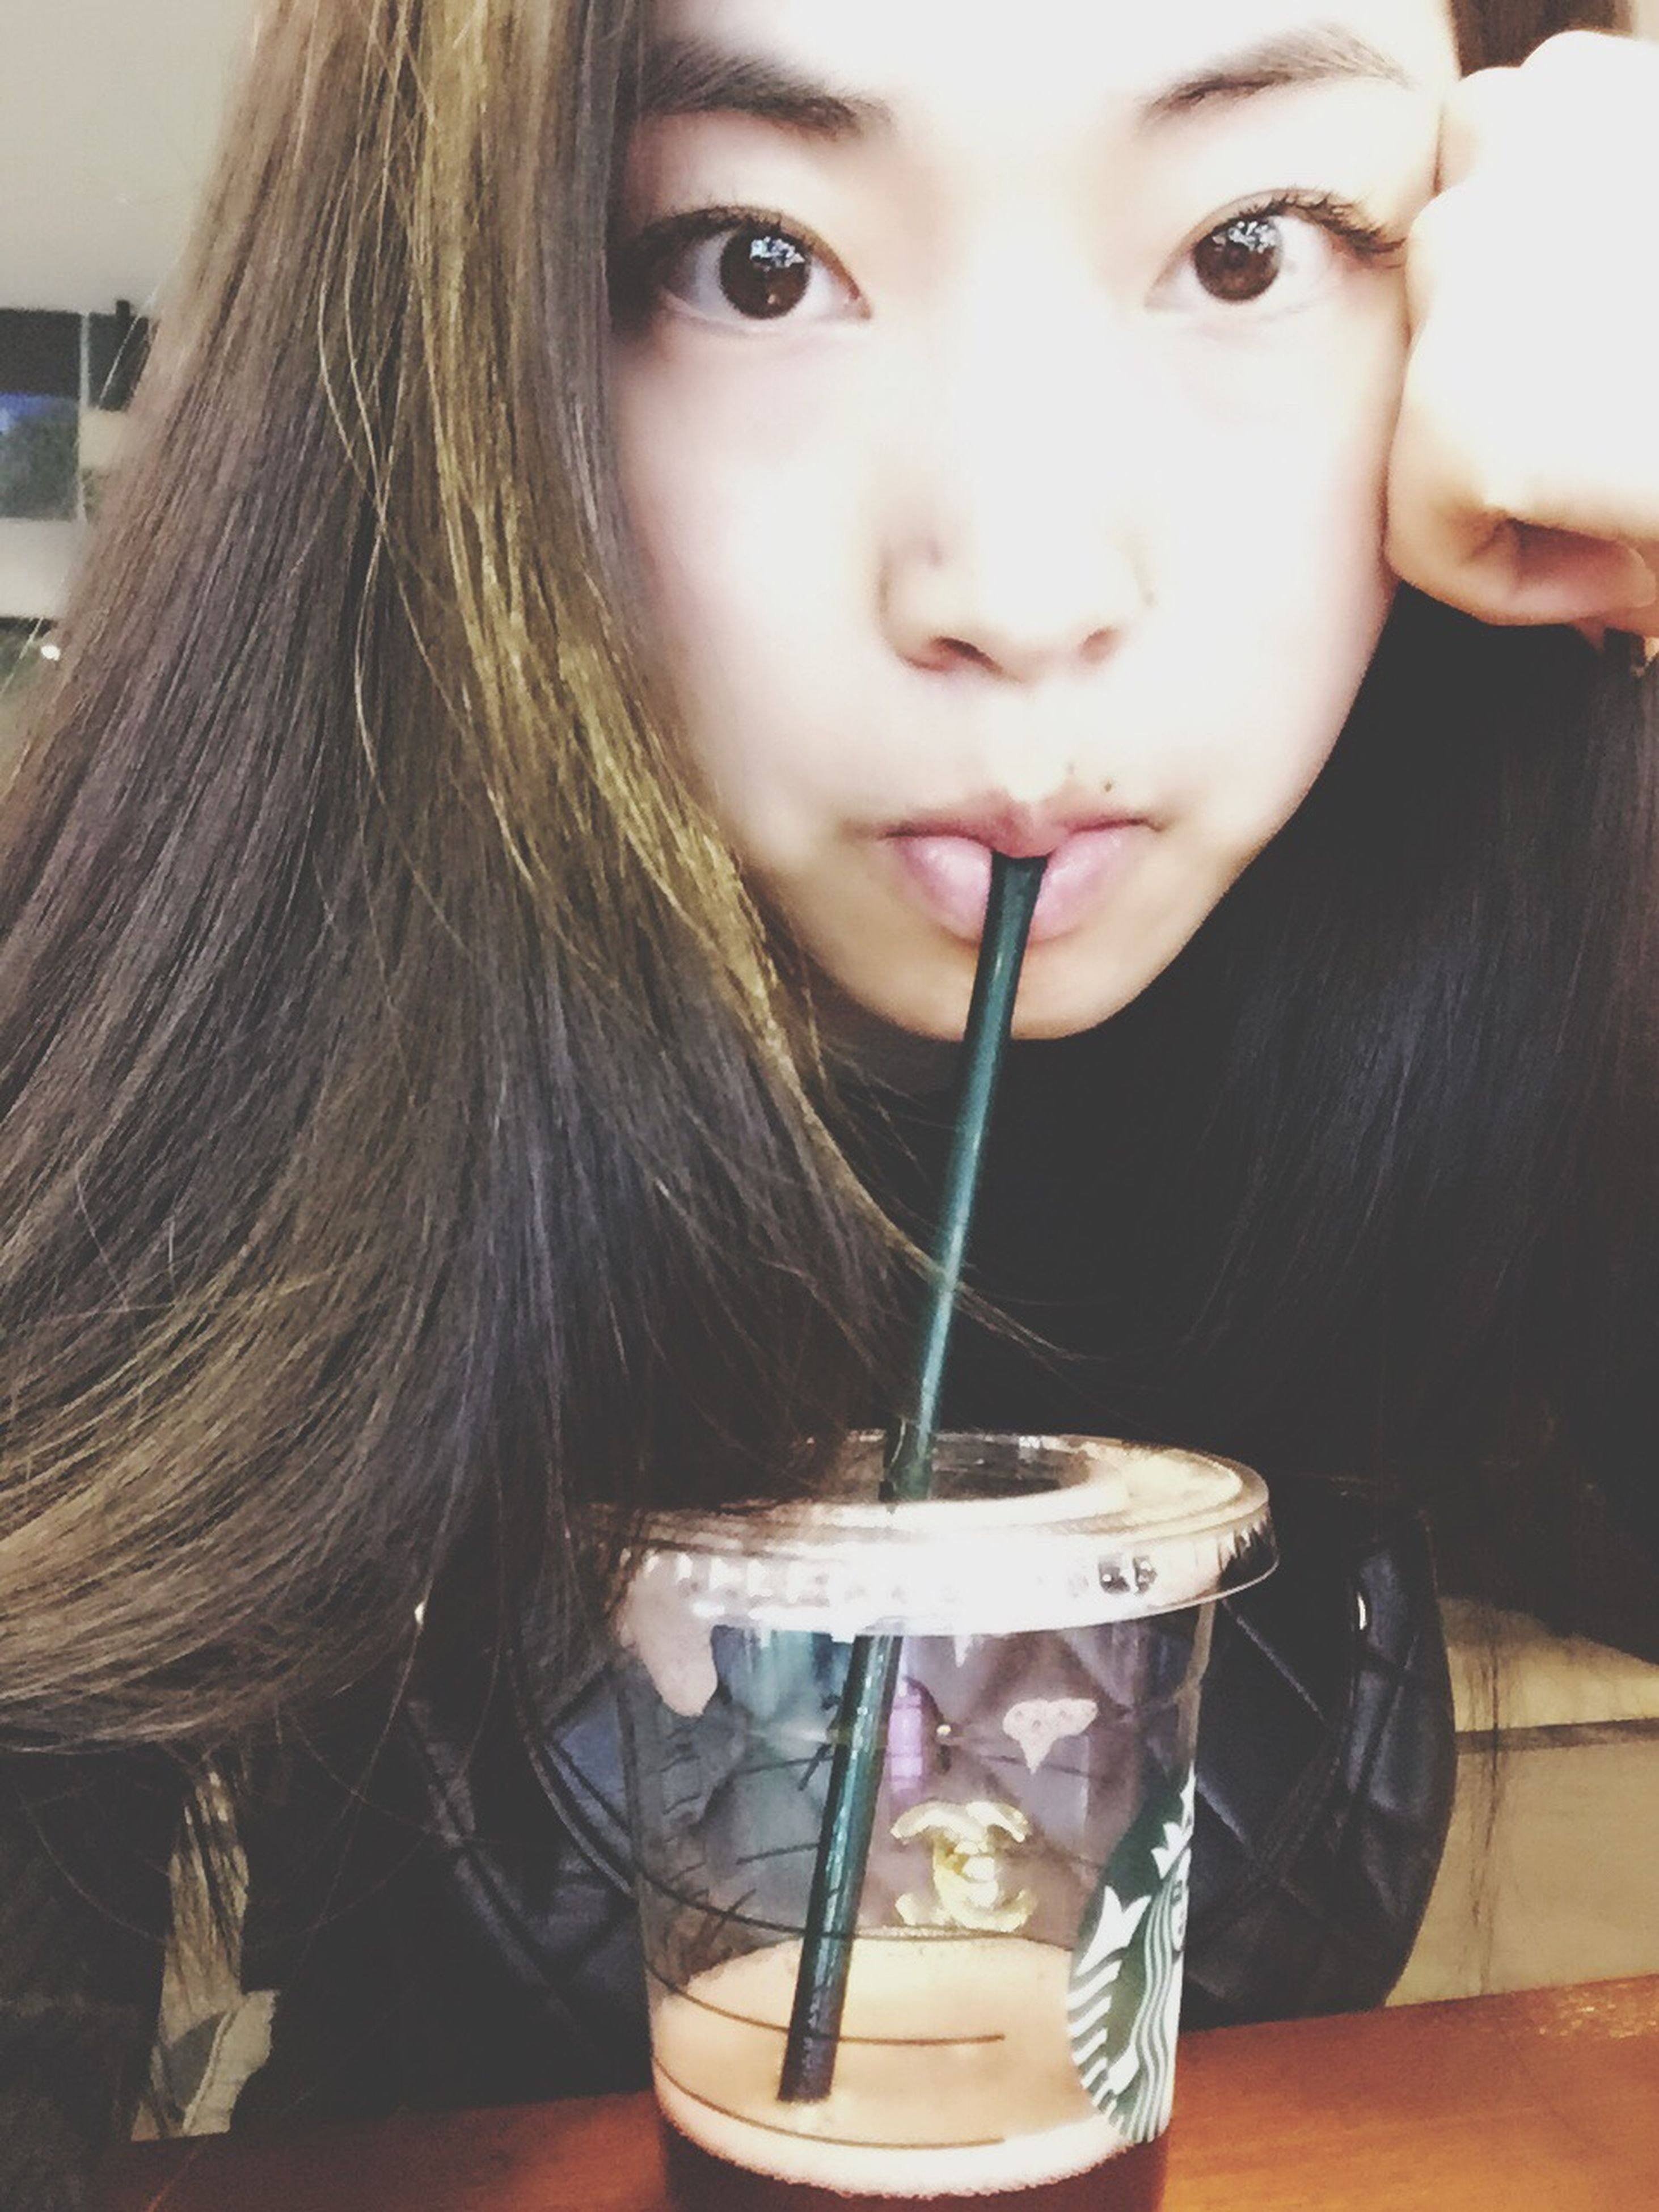 real people, drinking straw, looking at camera, front view, one person, food and drink, childhood, portrait, drinking, headshot, drink, girls, holding, elementary age, lifestyles, close-up, indoors, medium-length hair, food, day, freshness